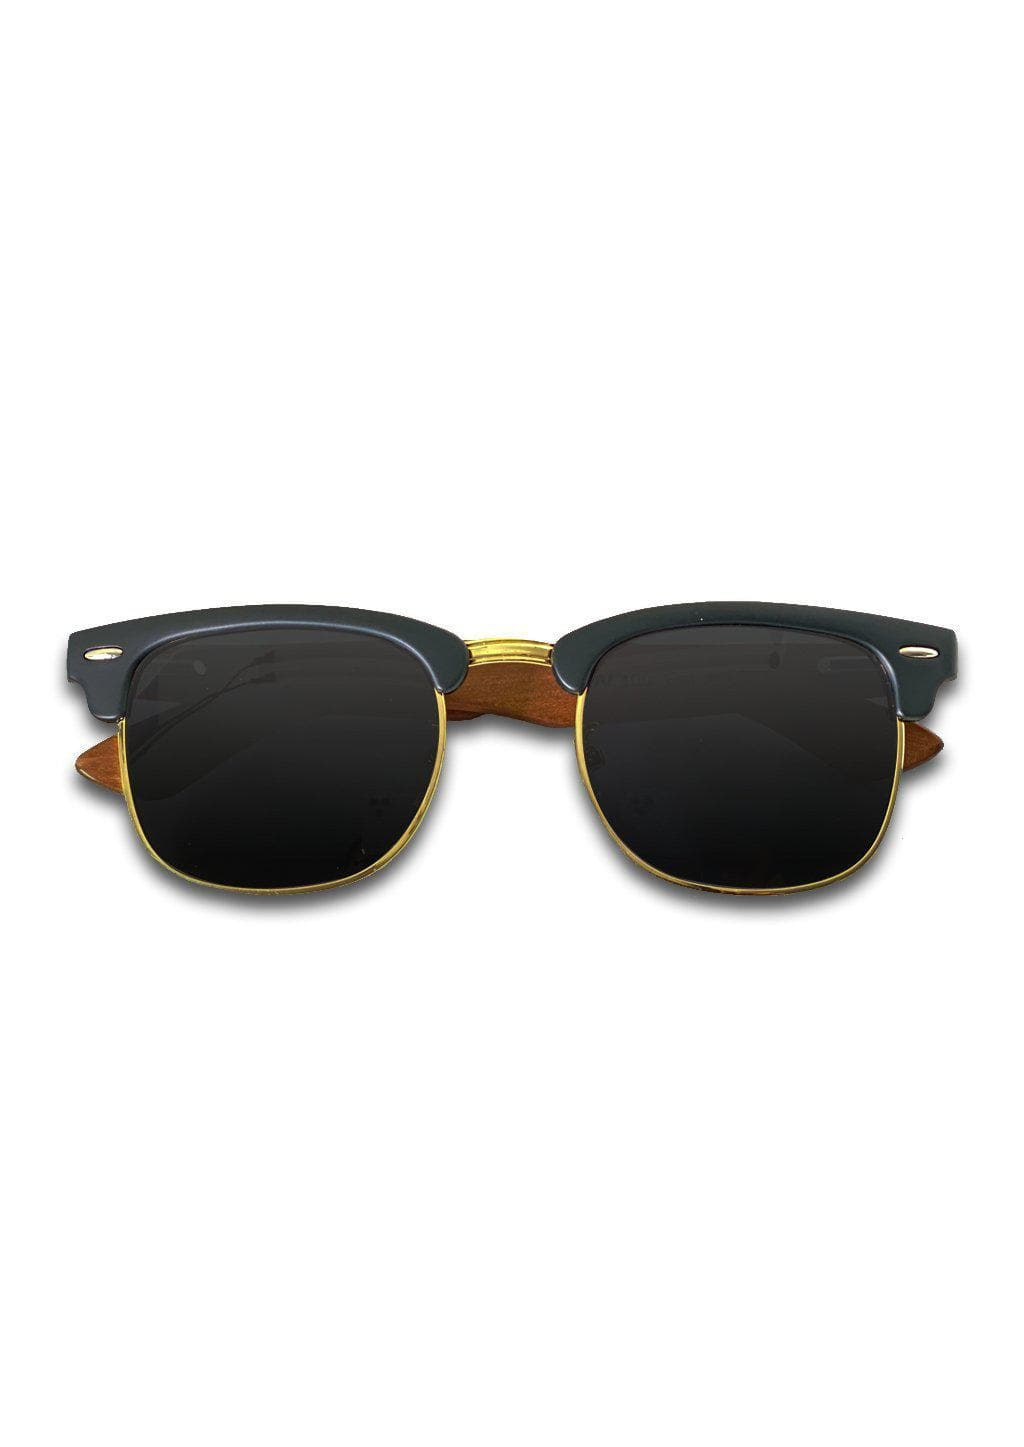 Eyewood Clubmaster - Adrian - Classic wood mixed with plastic to make these stylish clubmasters.